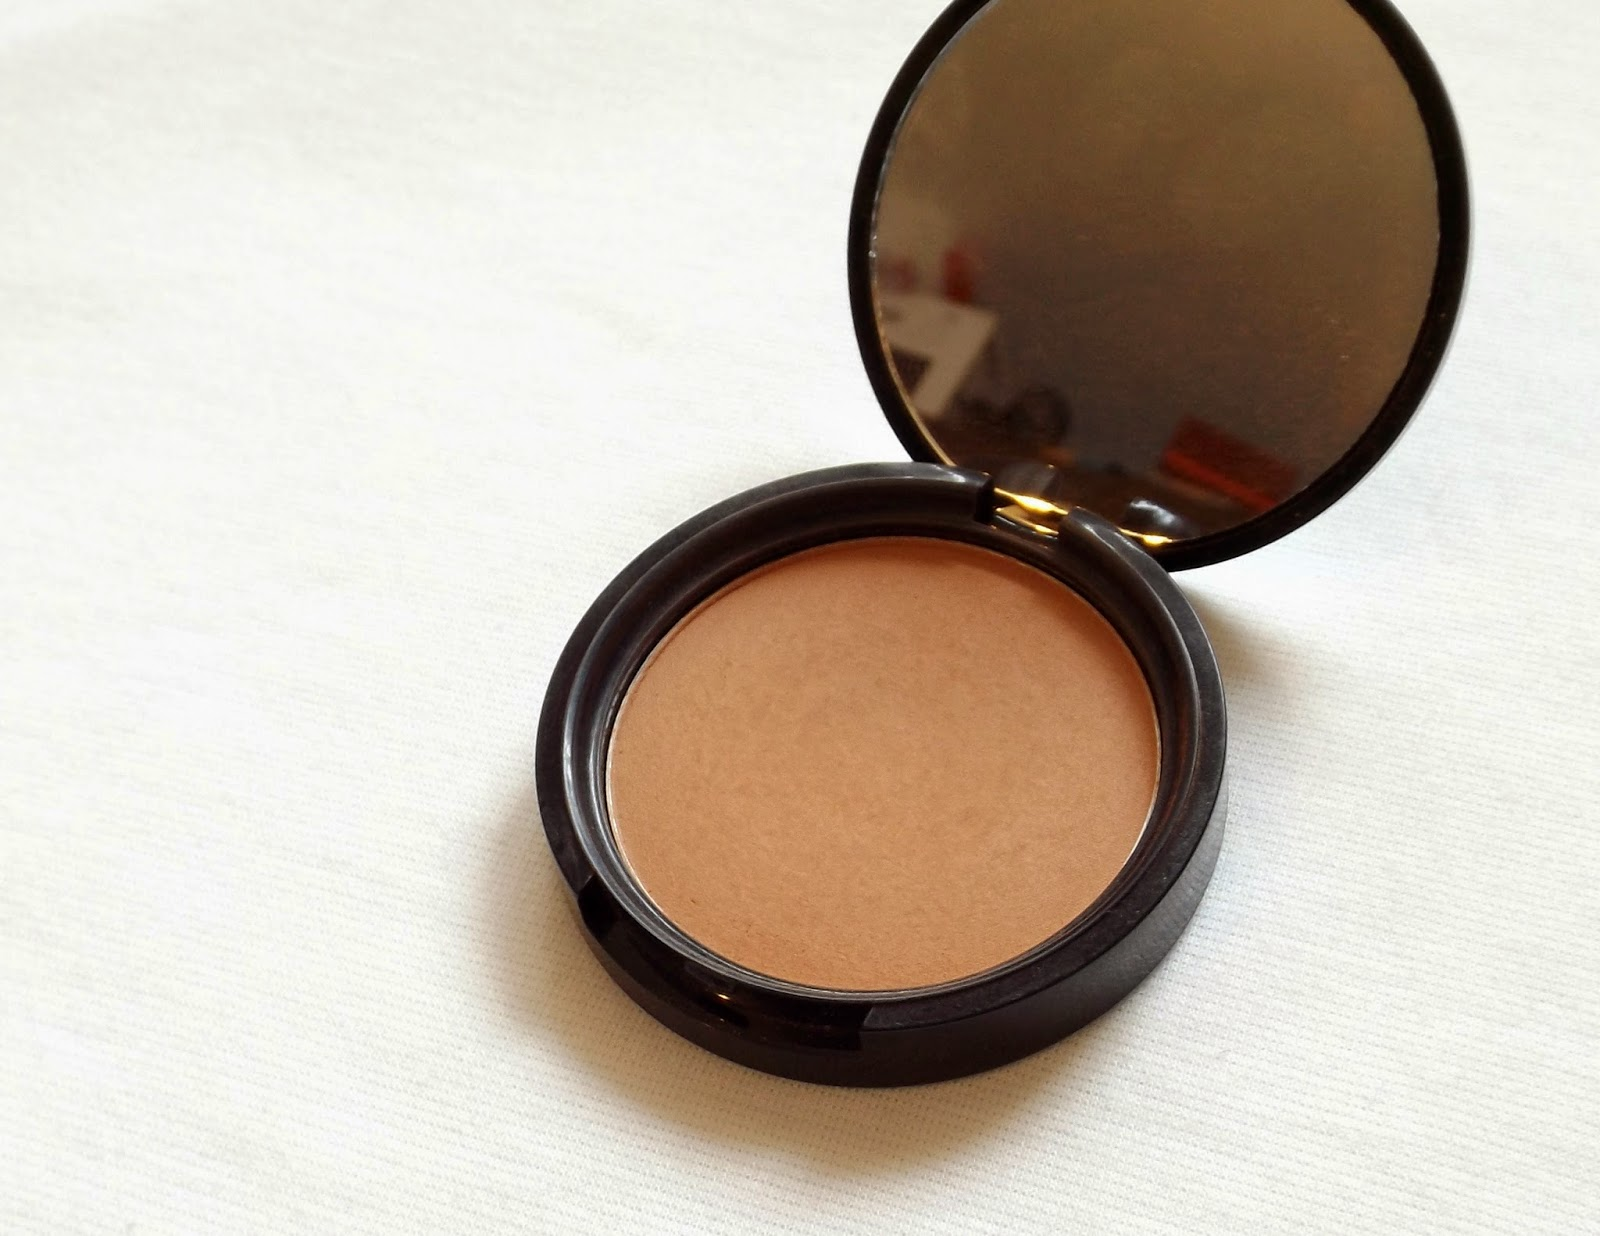 Guest Blogger Rukhsar Shakoof Nyx Matte Bronzer Review Swatches Me I Would Suggest Using A Light Hand With This As It Can Start To Look Bit Orange On Paler Skin Tones Or You Could Purchase In Lighter Shade